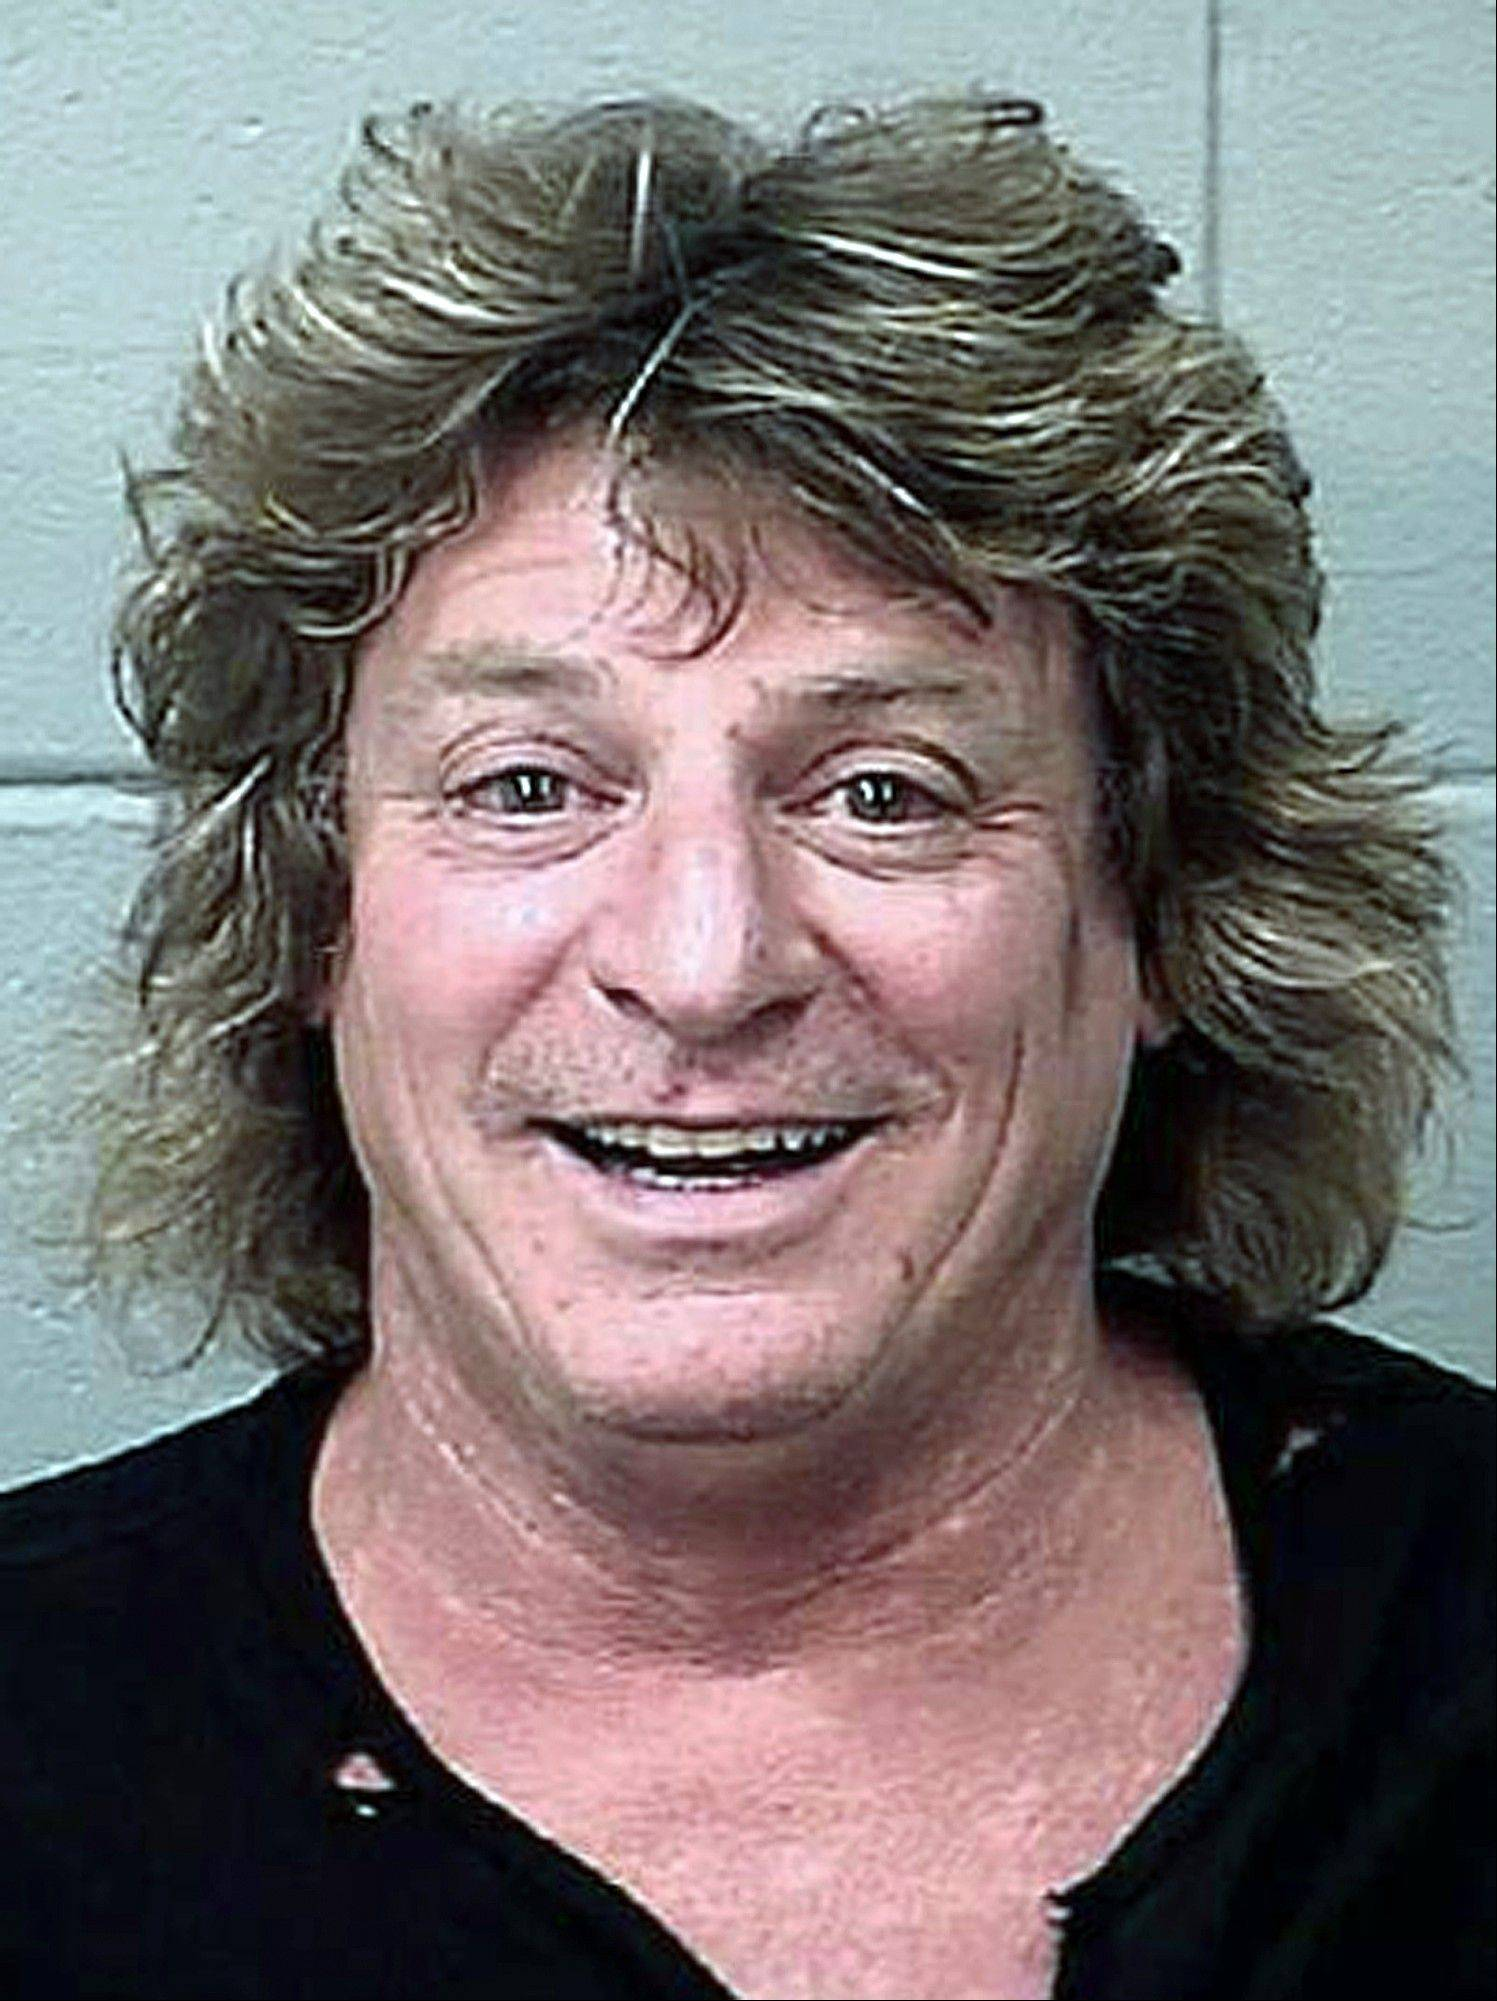 Mick Brown, drummer for classic rocker Ted Nugent, was arrested in Bangor, Maine, Sunday night and charged with driving drunk in a golf cart stolen from a concert venue.